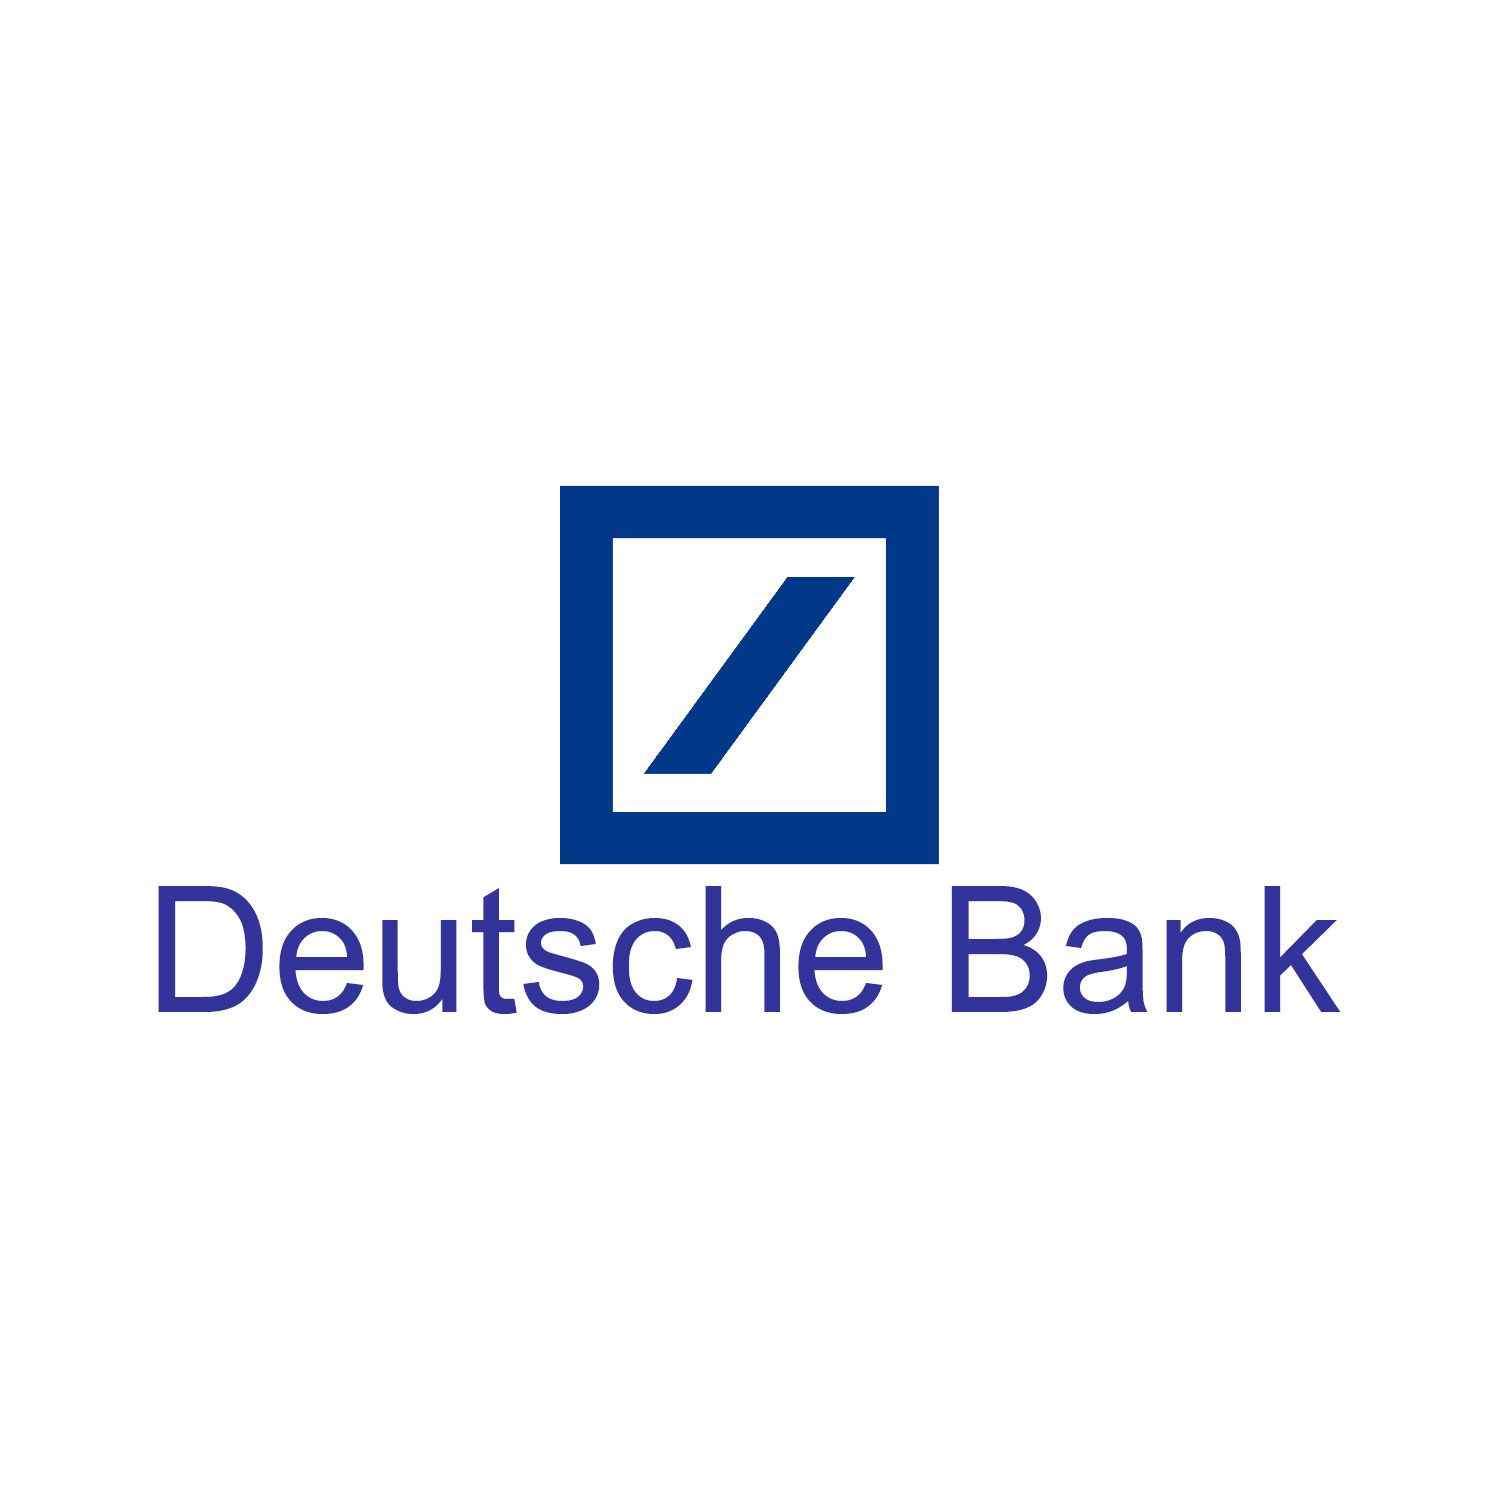 Deutsche Bank Logo - deutsche-bank - logo - Rachel Kelly